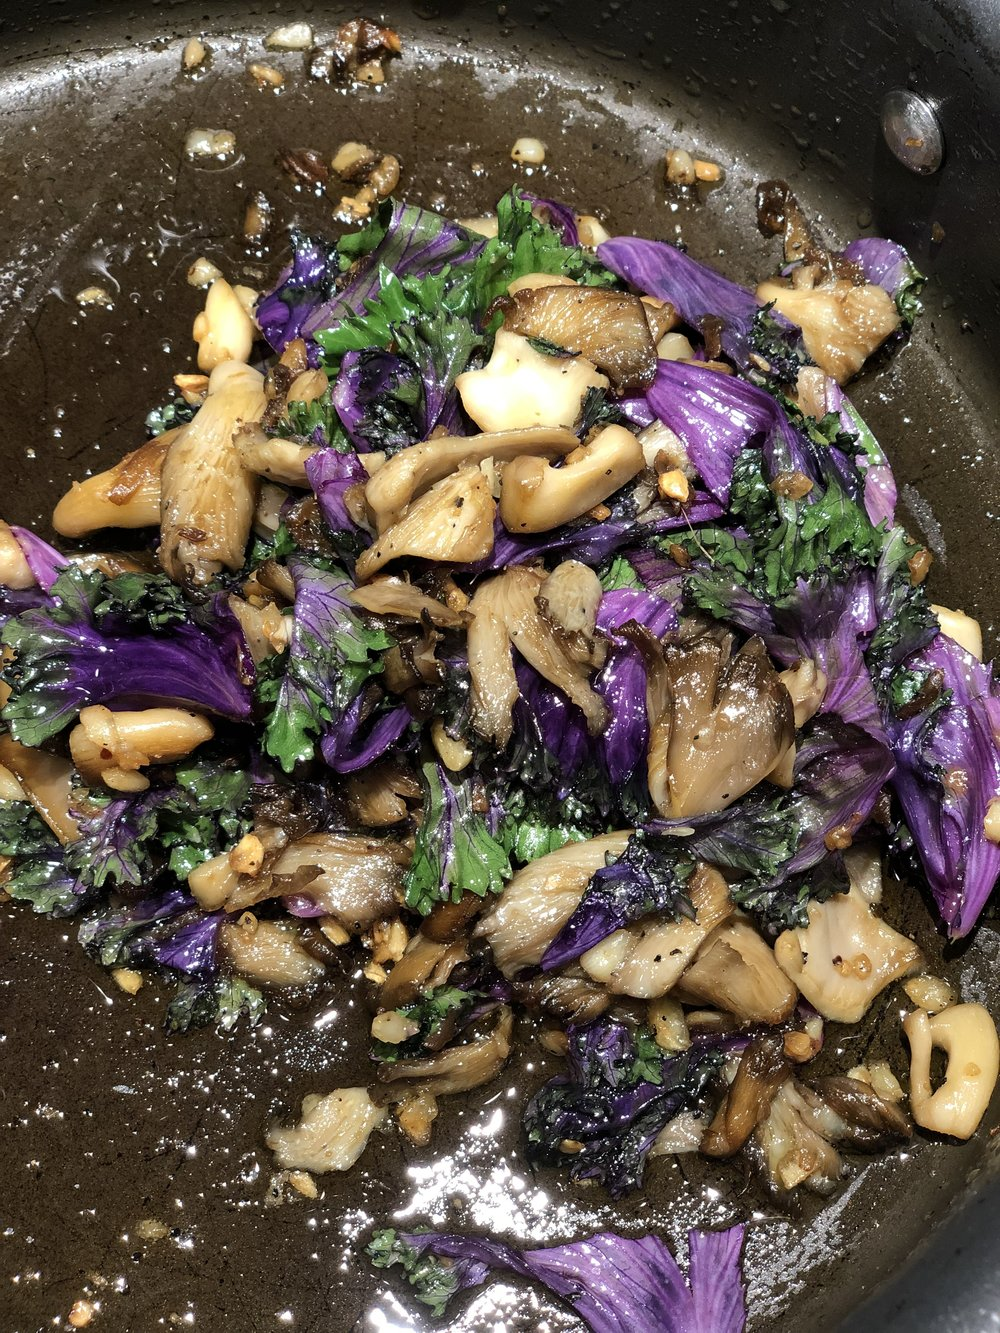 Saute garlic 3-5 min on low, add mushrooms and brown on medium-high for 5 min, and add kale for 5 min